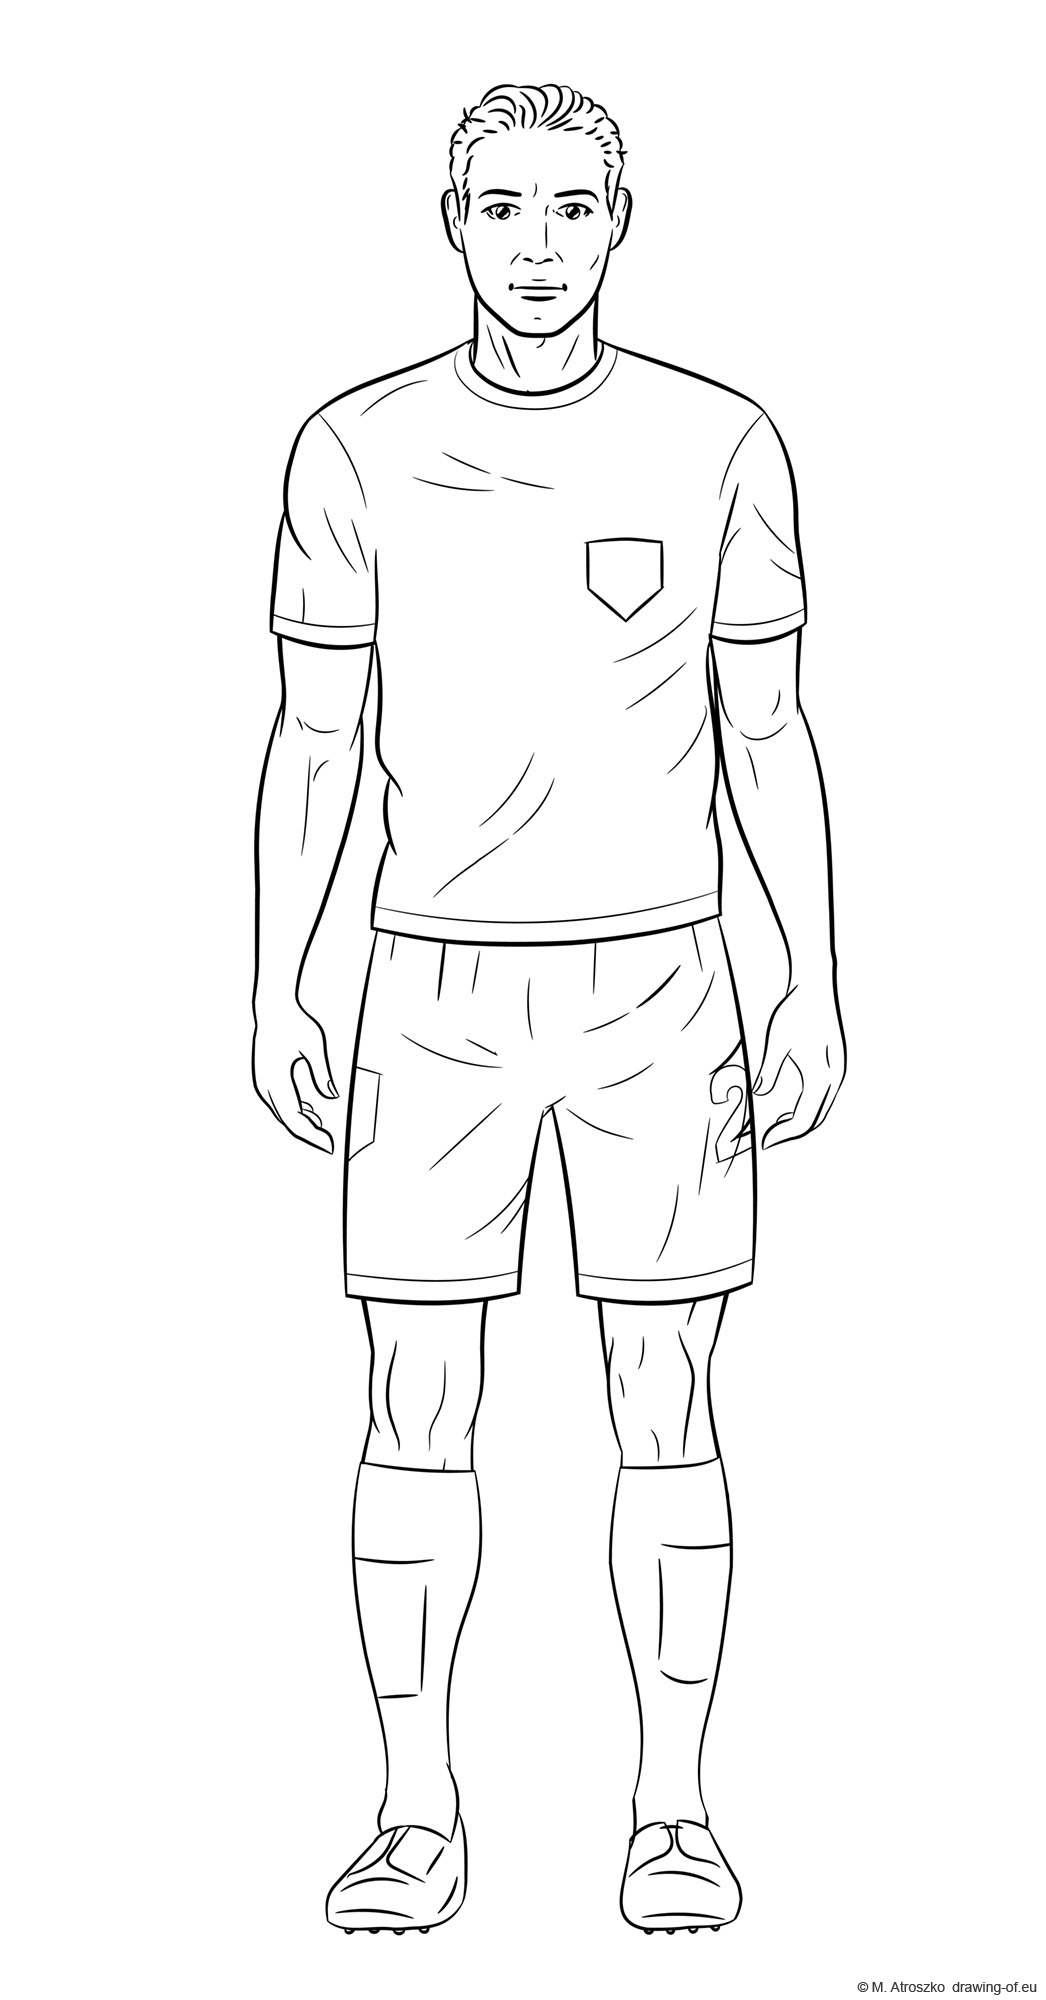 Drawing of soccer player